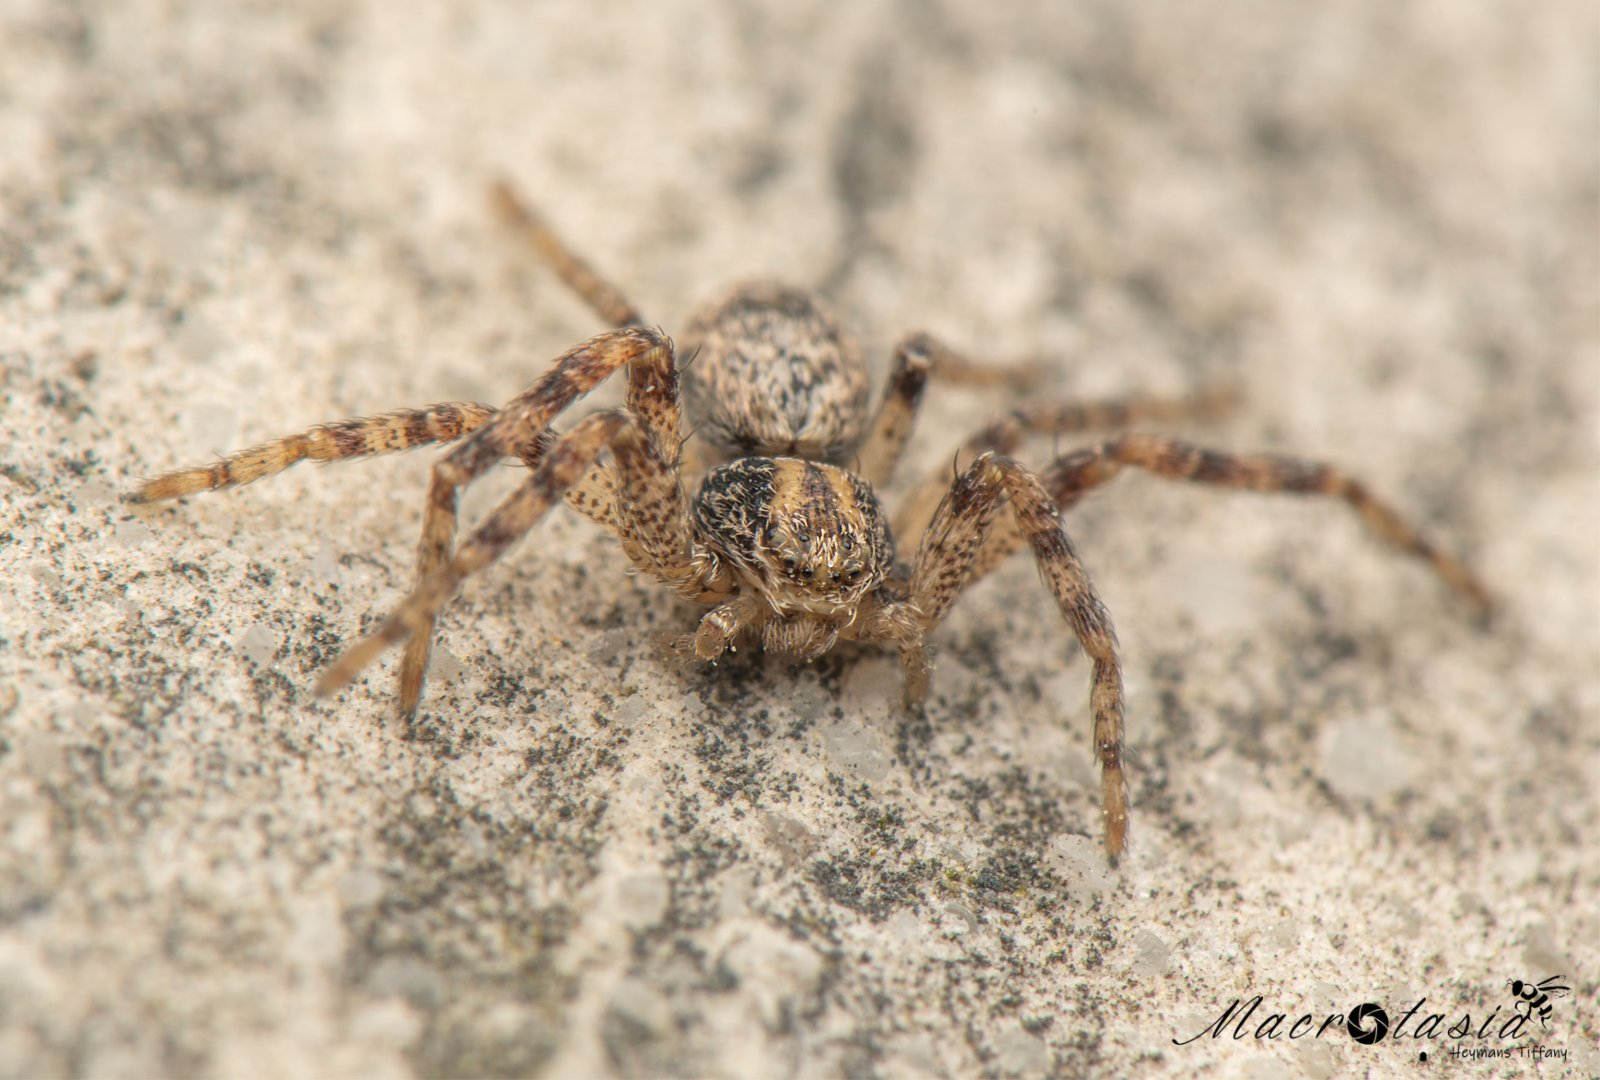 Renspin - Philodromus sp ♀